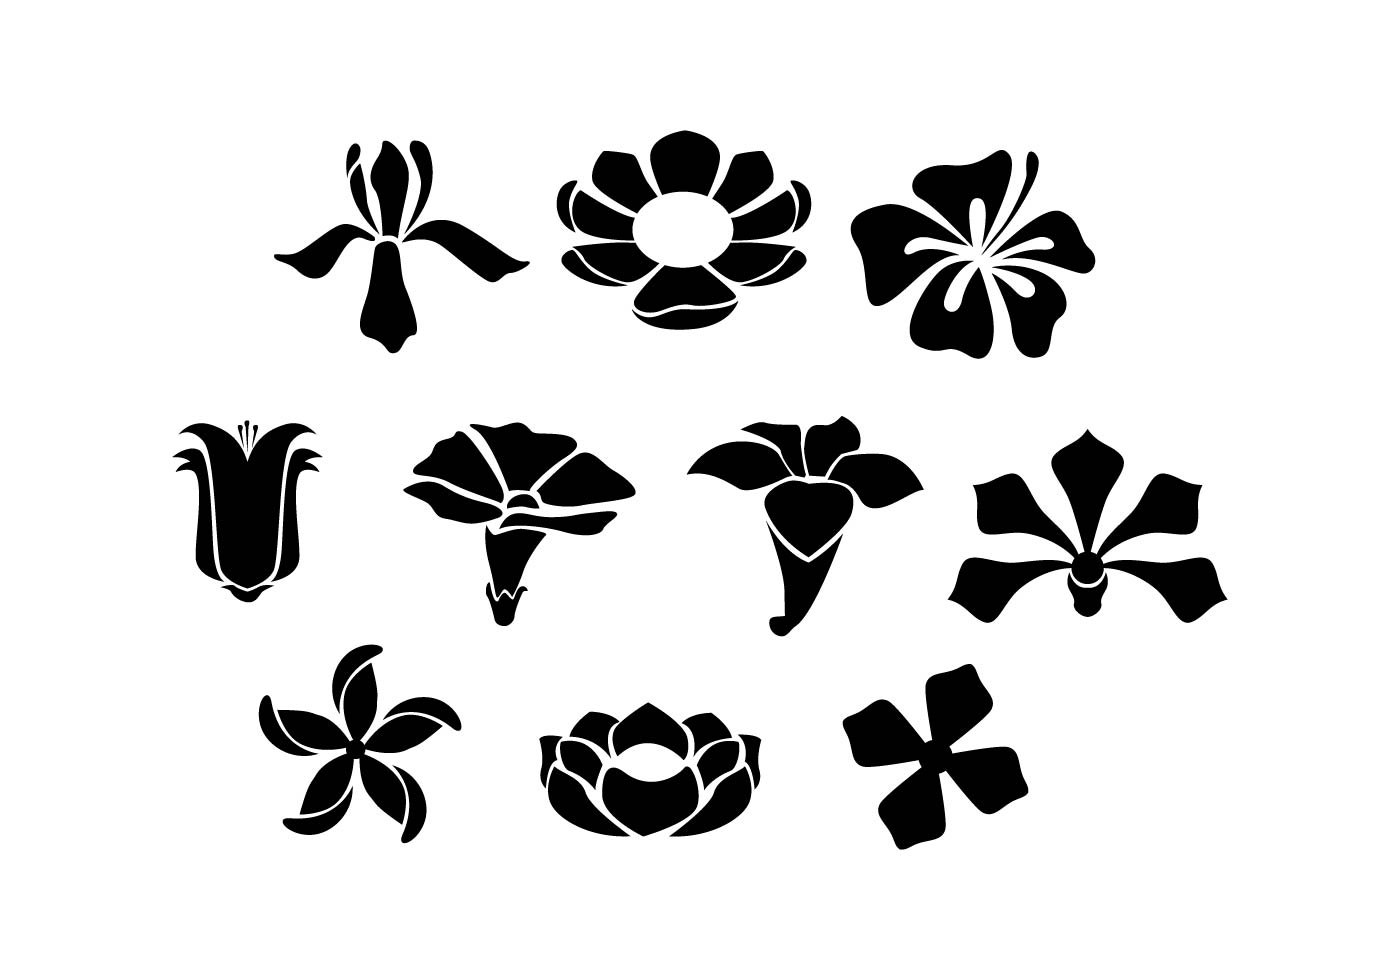 Flower Silhouette Free Vector Art 13772 Free Downloads